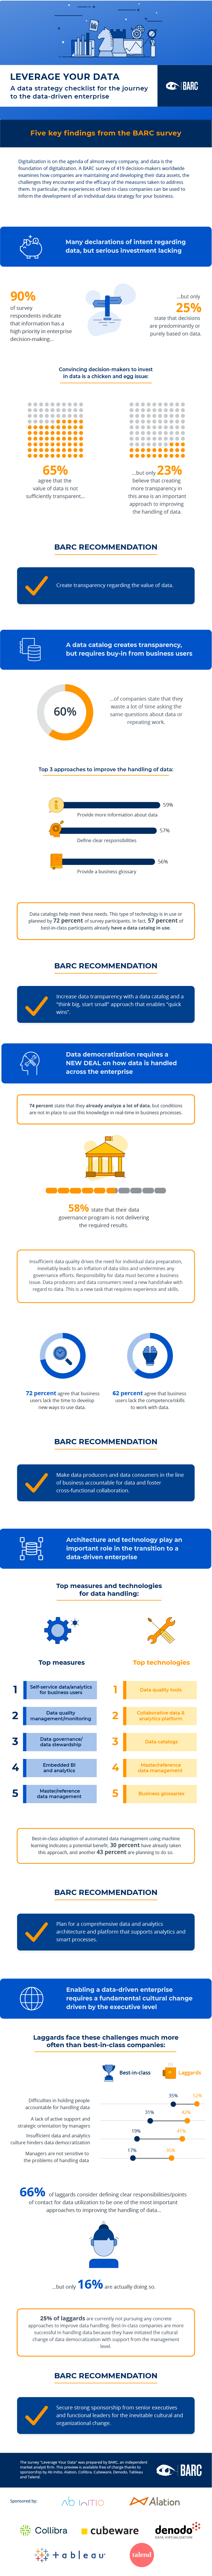 Leverage Your Data Infographic